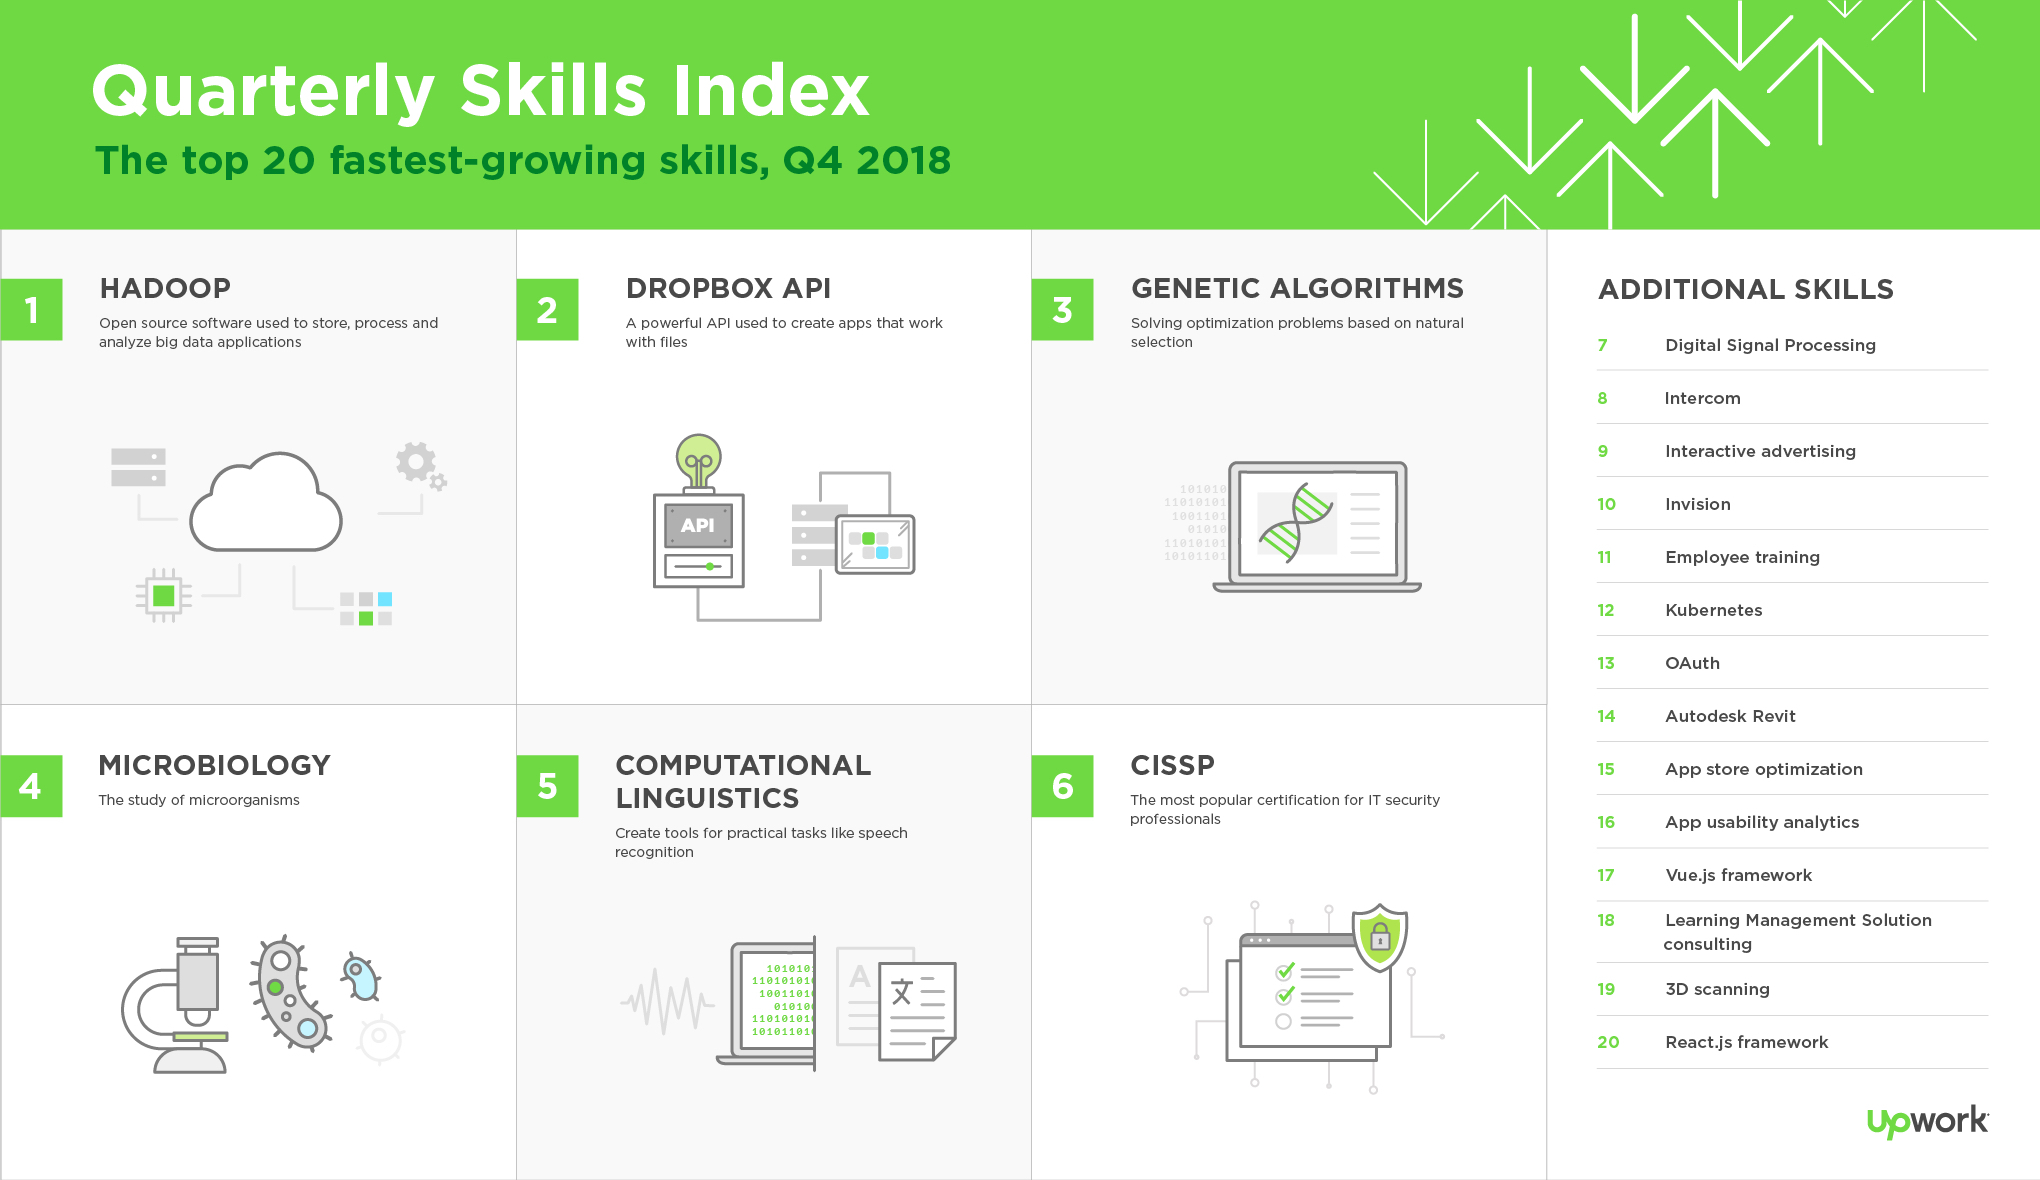 Upwork releases latest Skills Index, ranking the 20 fastest